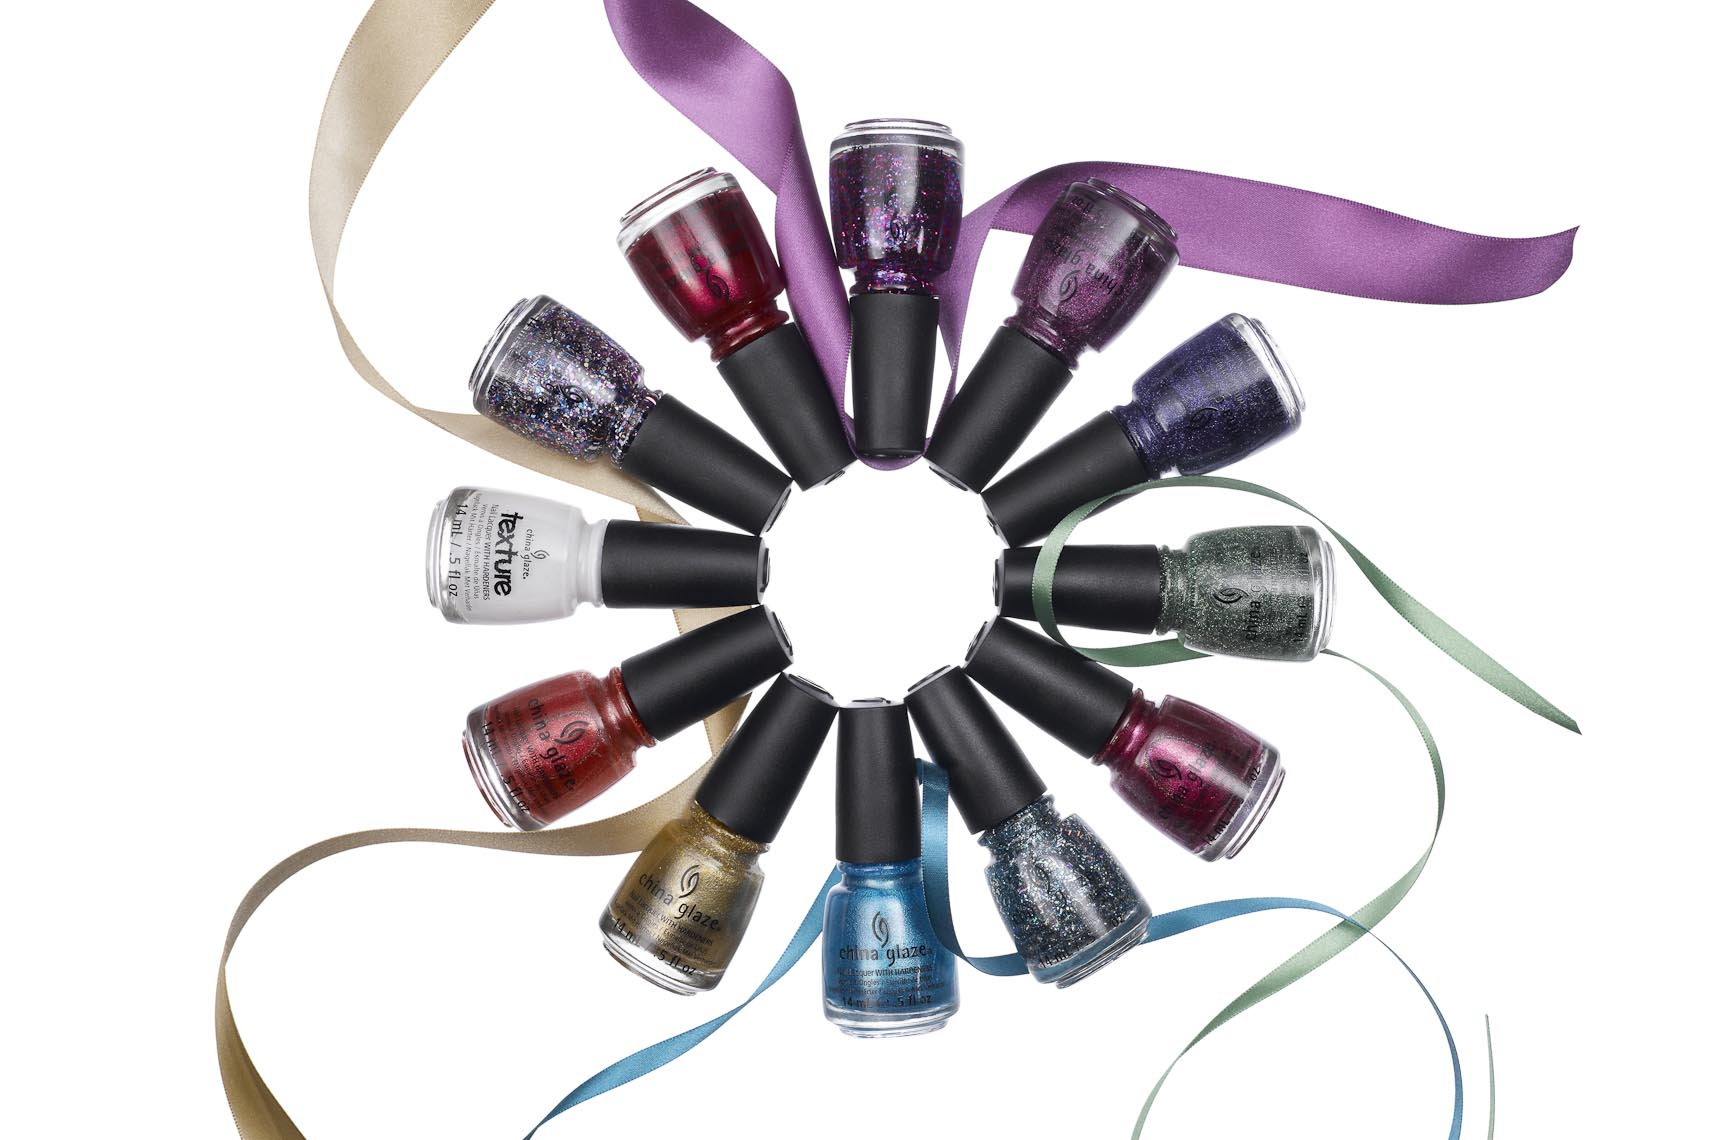 Cosmetics, Nail Polish Bottles and Ribbons - Mike Lorrig